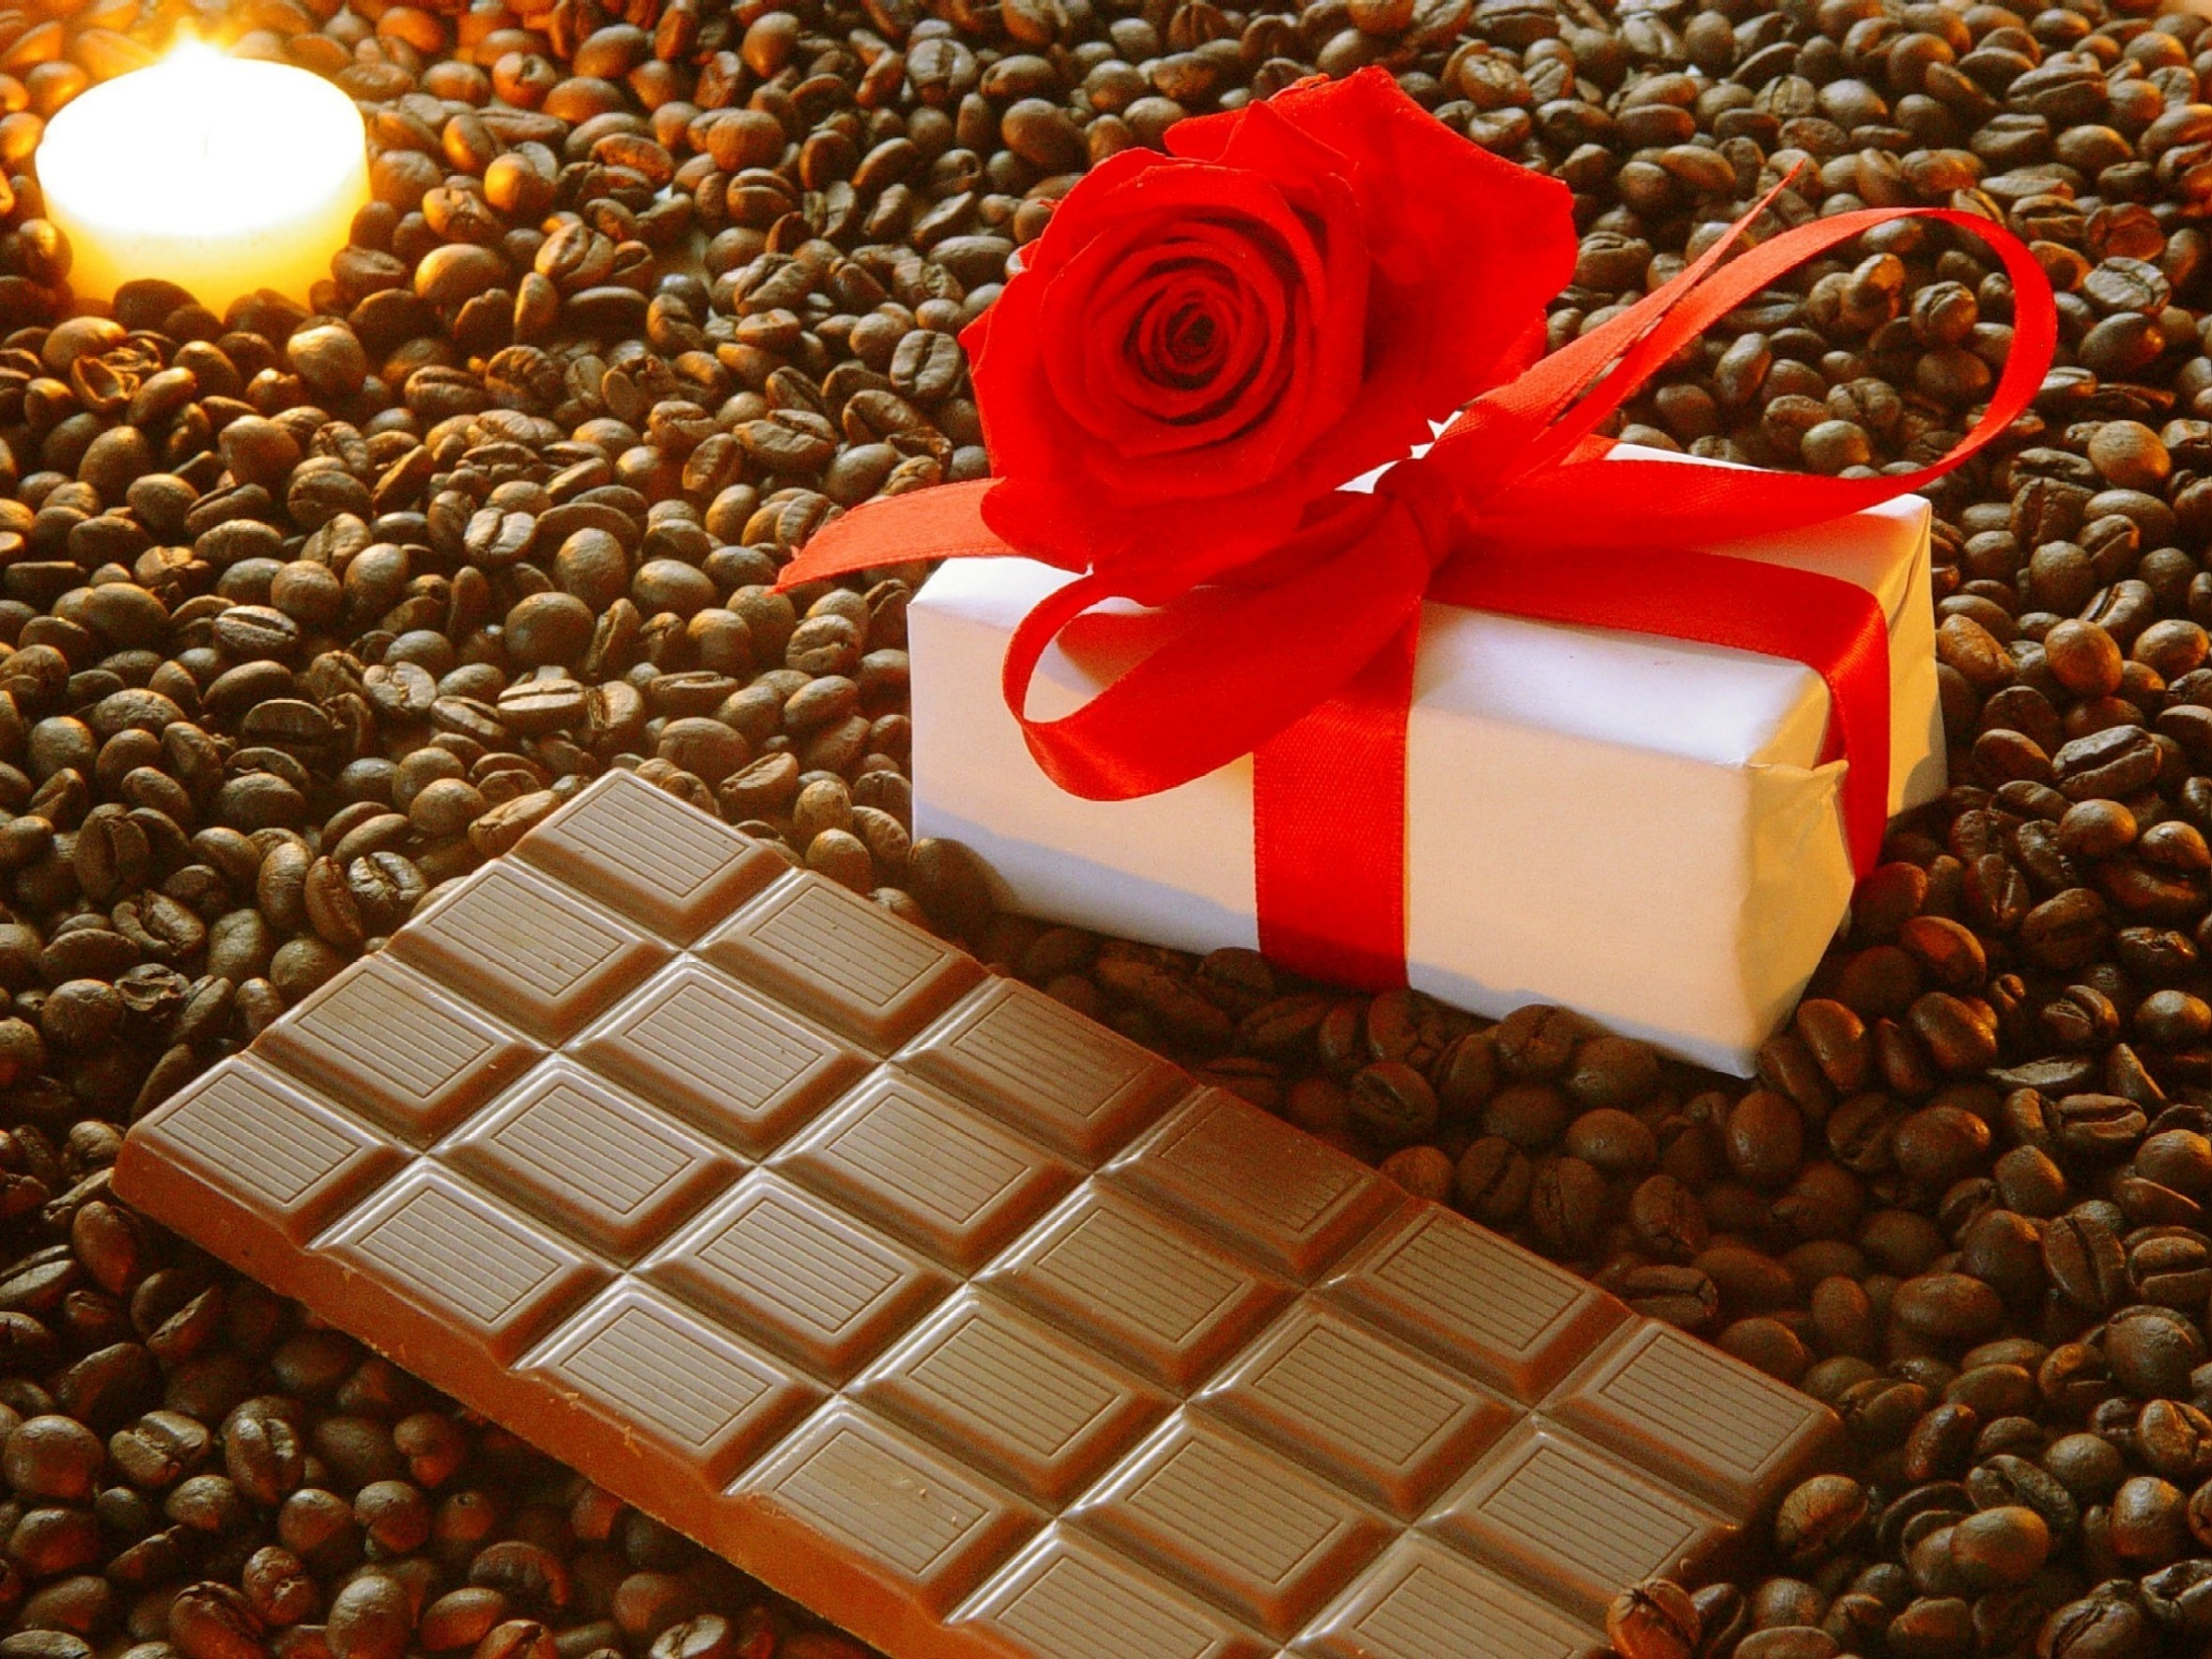 2355x1766 Chocolate HD Wallpaper | Background Image |  | ID:442902 -  Wallpaper Abyss